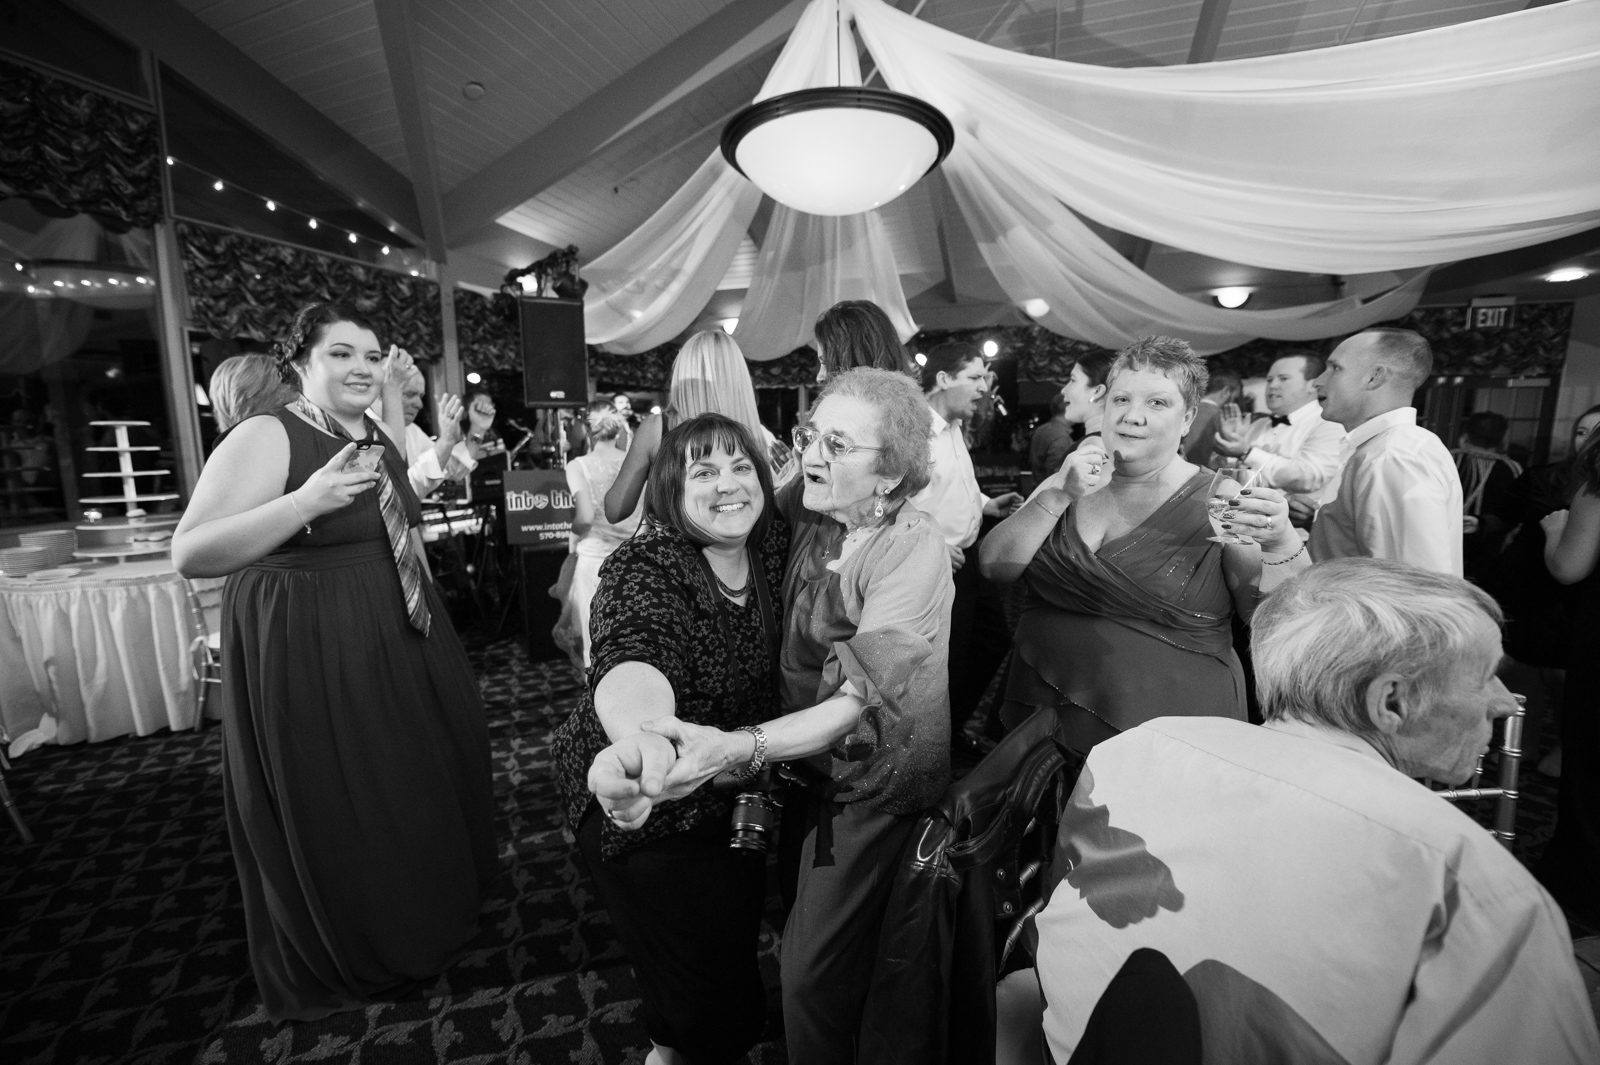 Scranton-clarks-summit-wedding-glen-oaks-contry-club-wedding-photographer-steven-serge-114.jpg